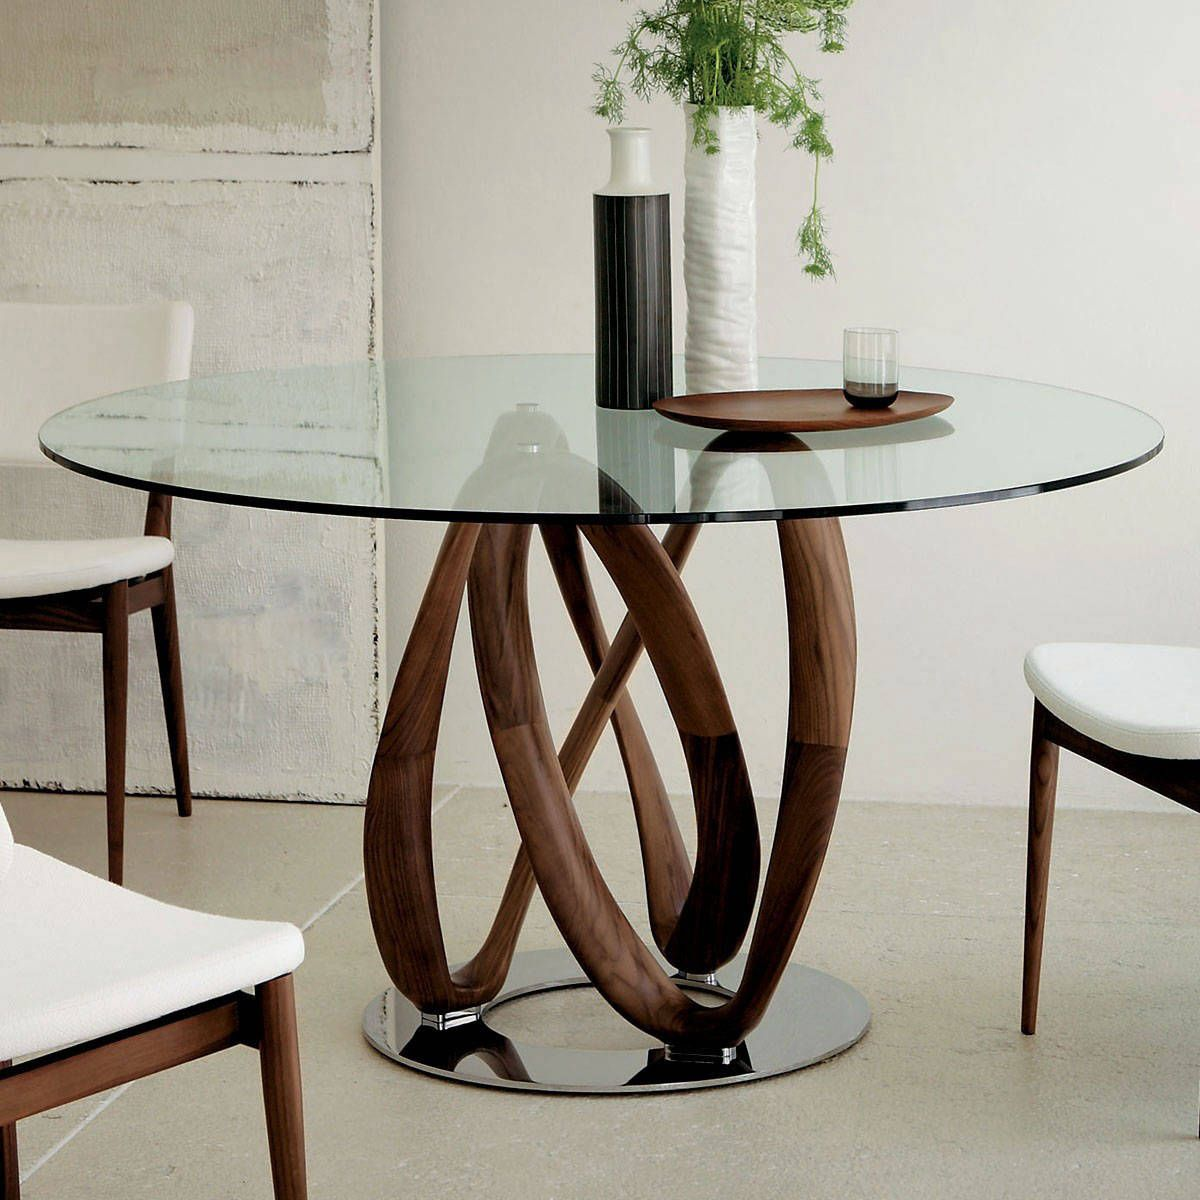 Porada Round Table Google Search Glass Round Dining Table